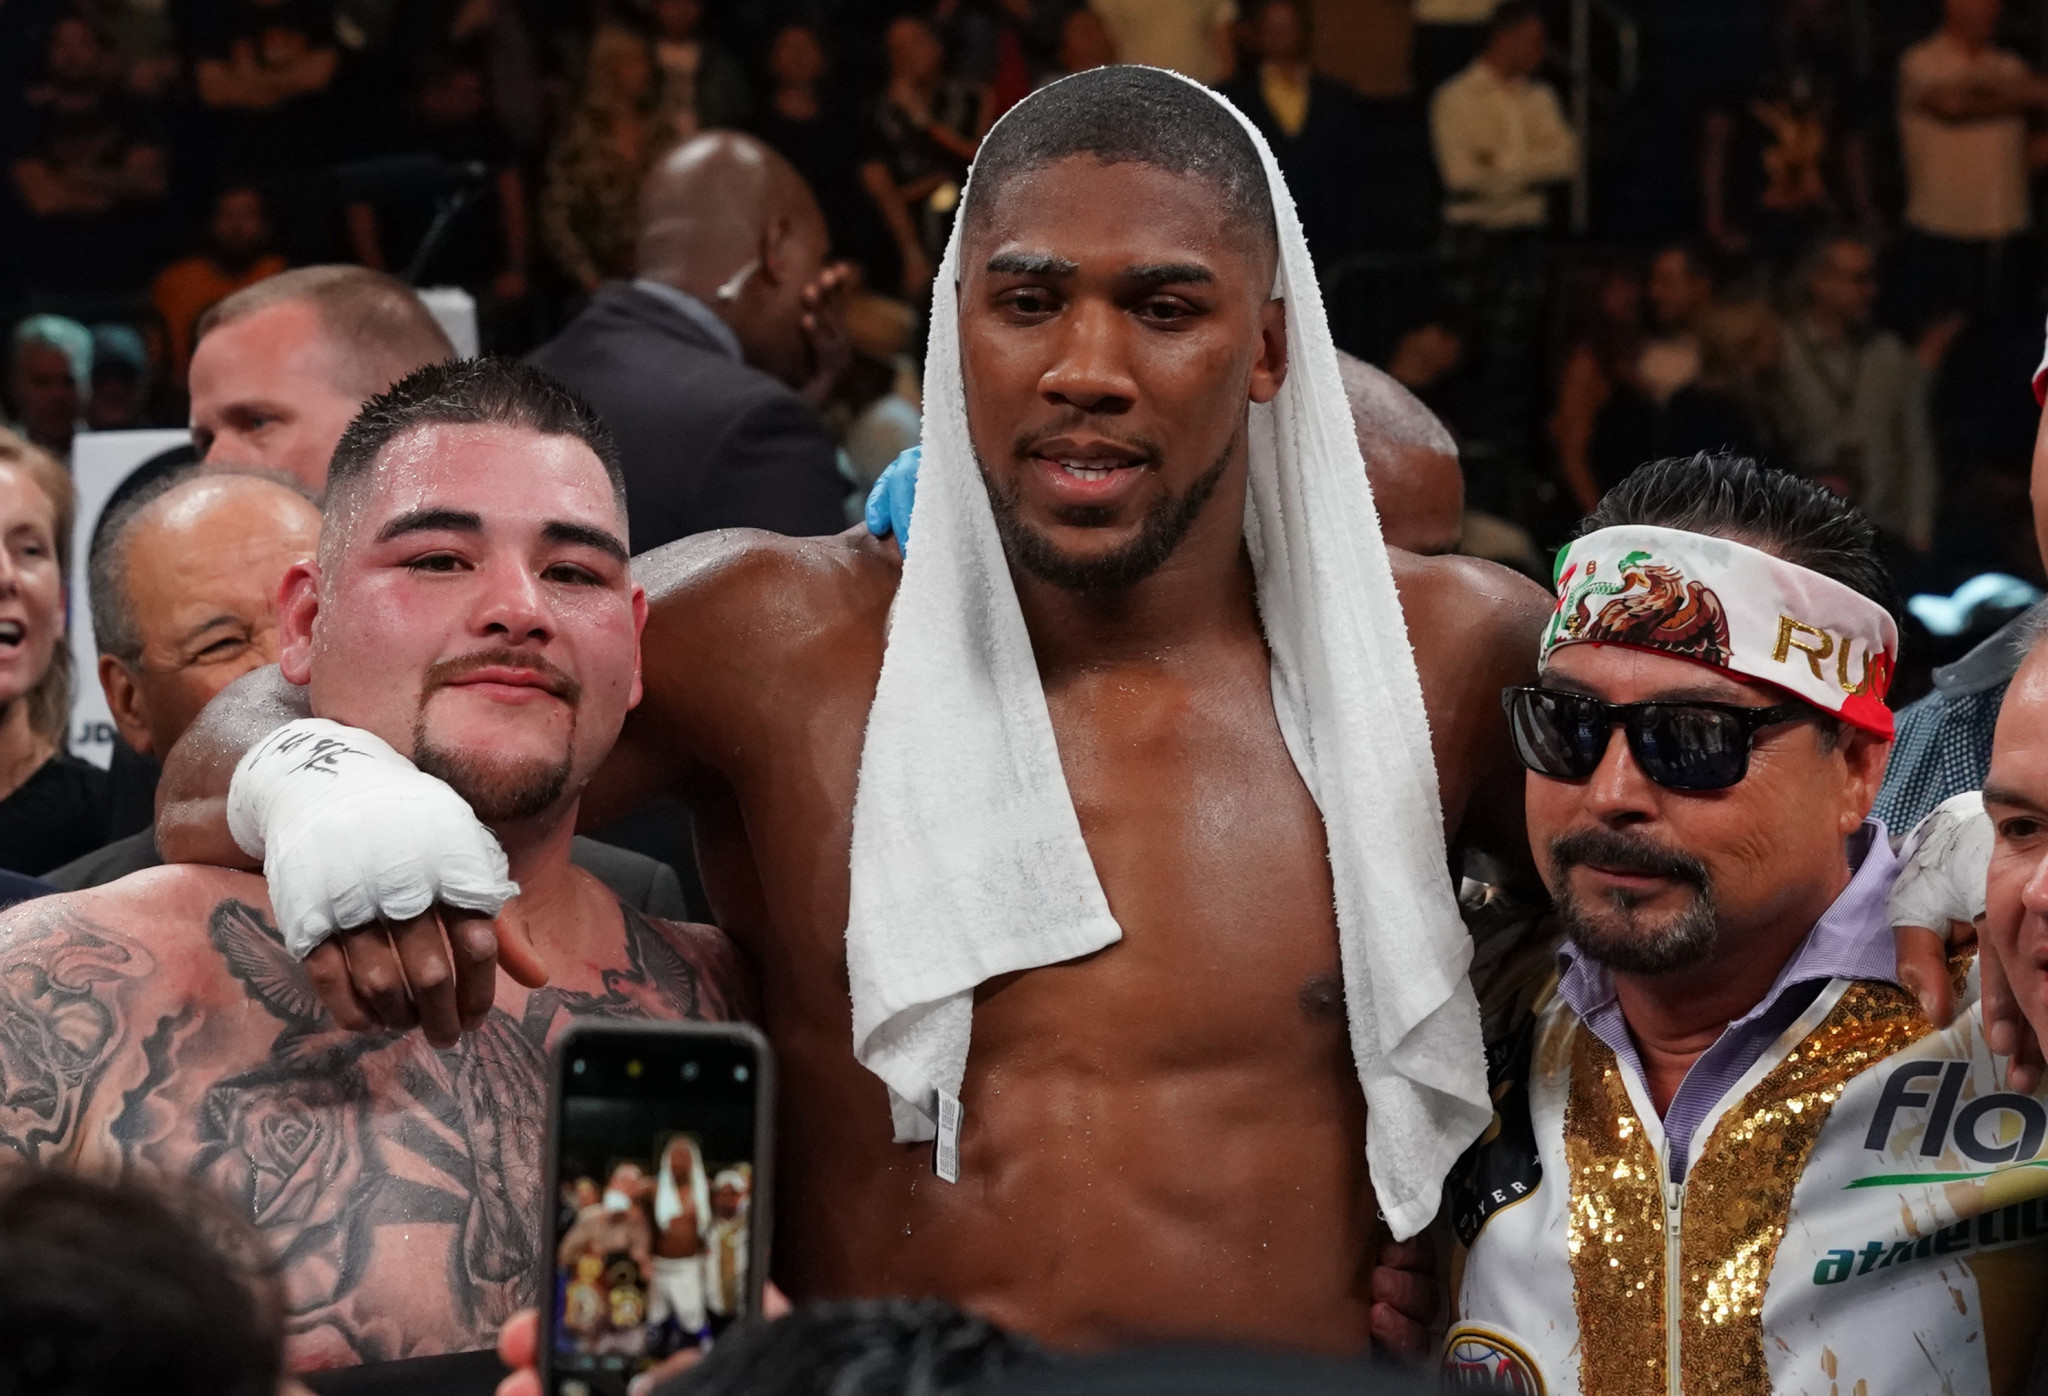 Rather than appearing upset by his shock defeat, Anthony Joshua happily posed with pictures with the man who beat him - Mexico's unfancied Andy Ruiz jnr ©Getty Images